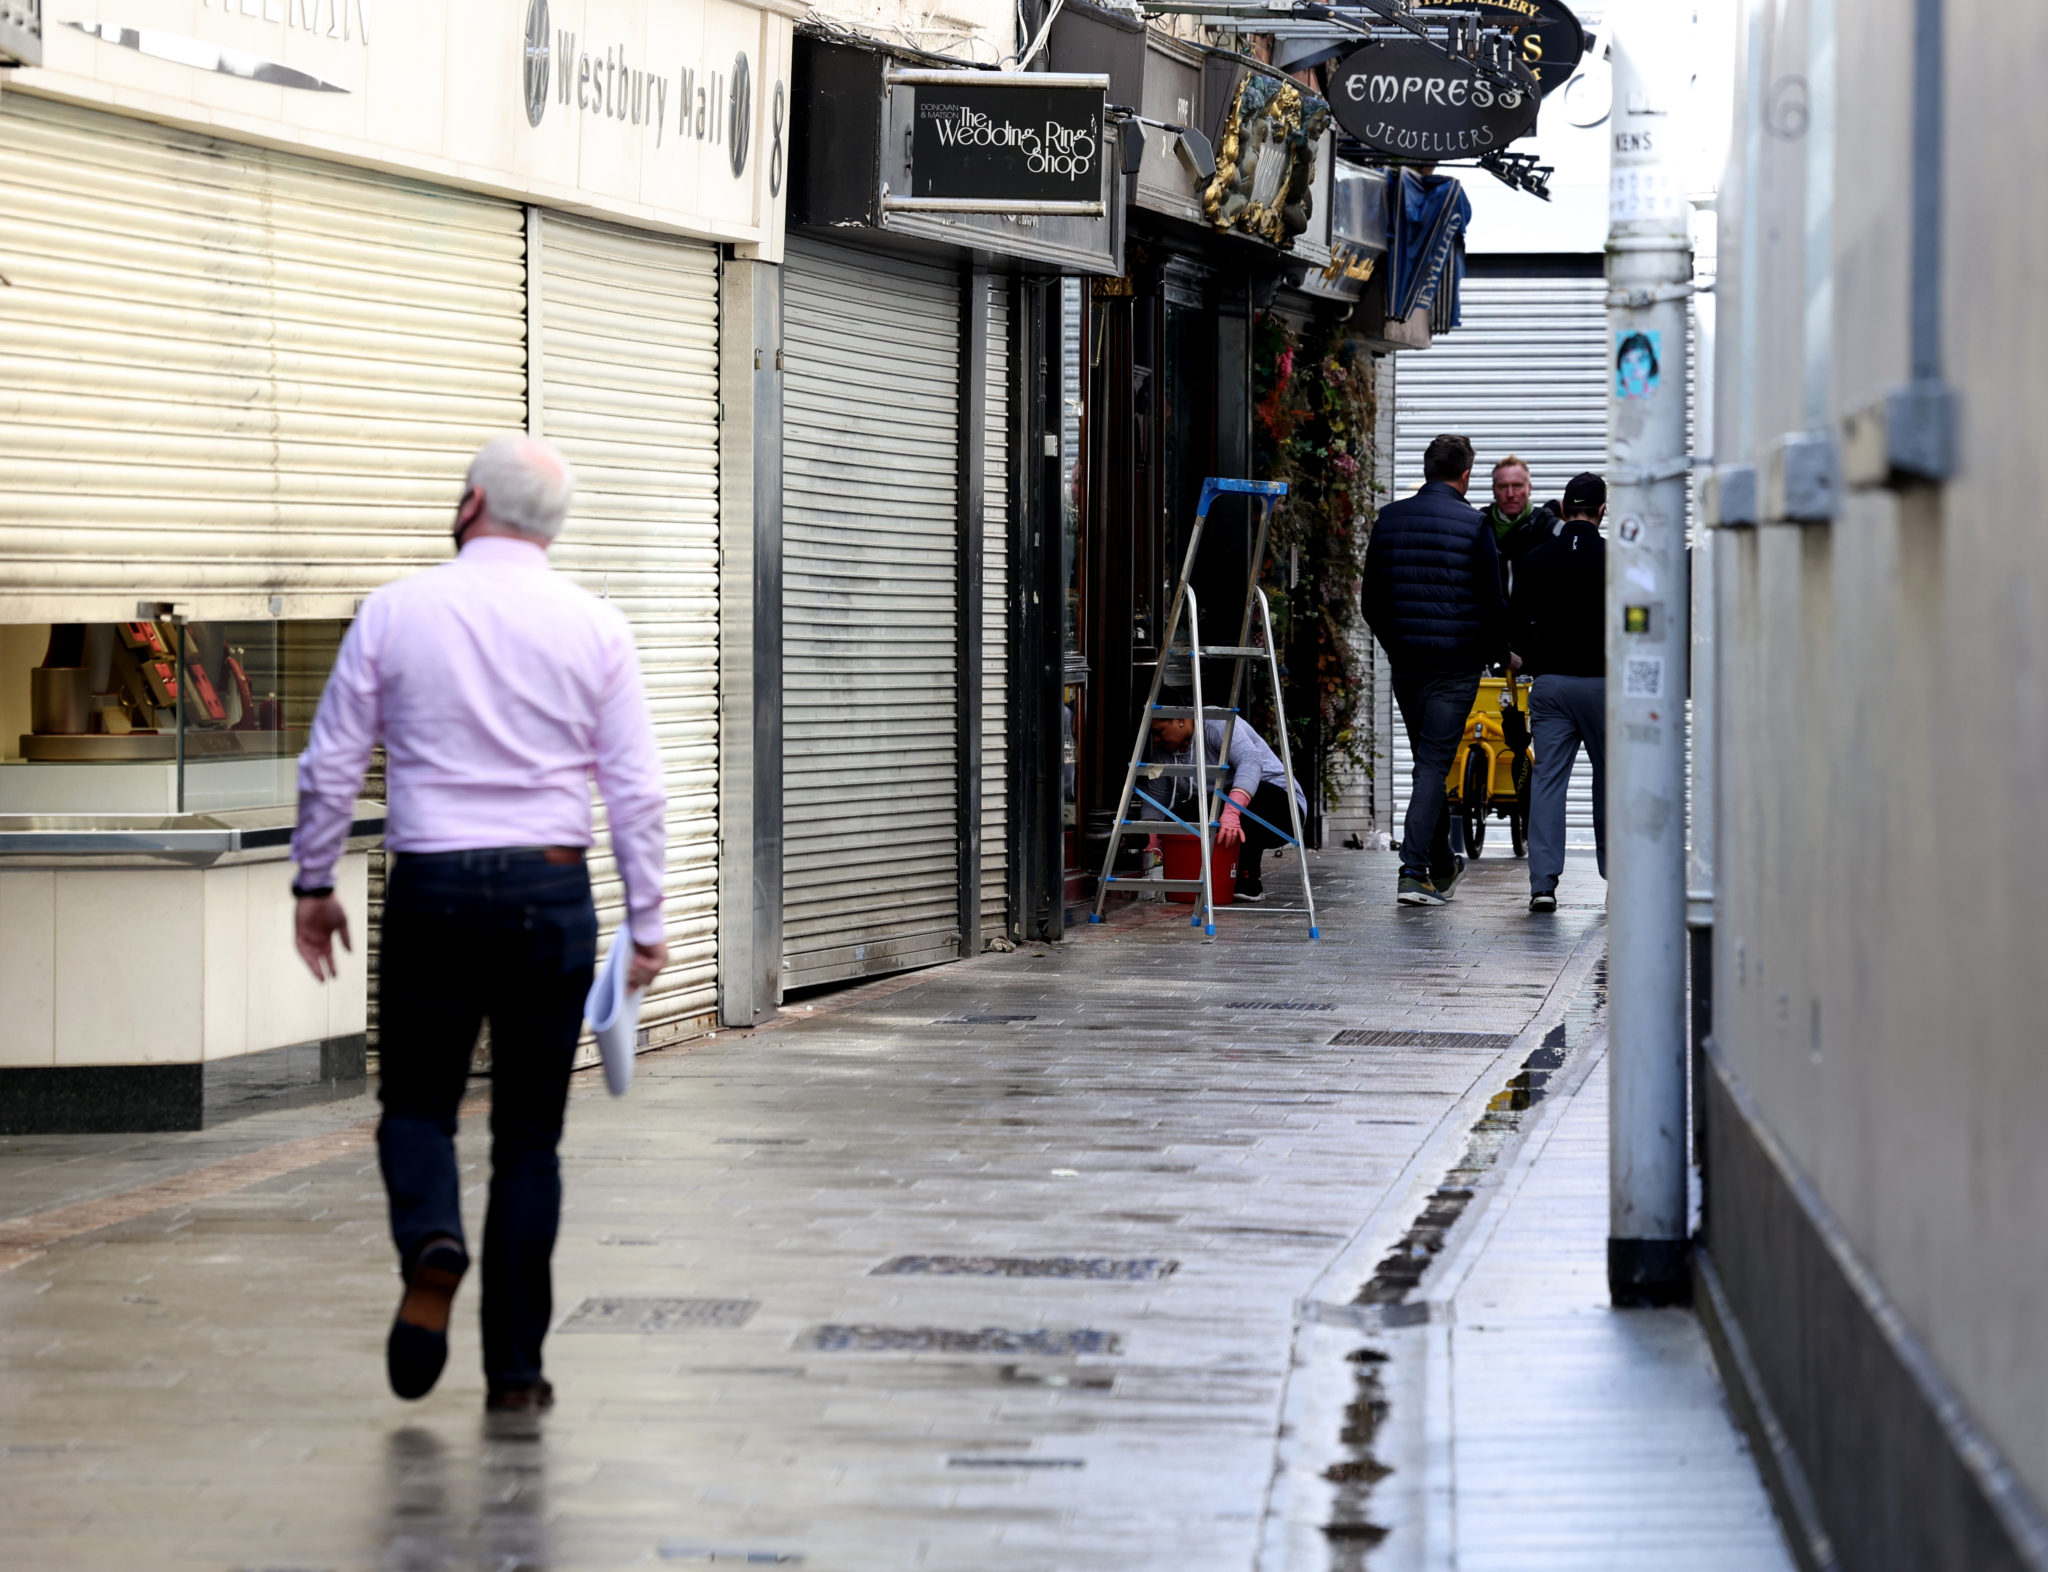 People dressing shops in Dublin City Centre ahead of re-opening